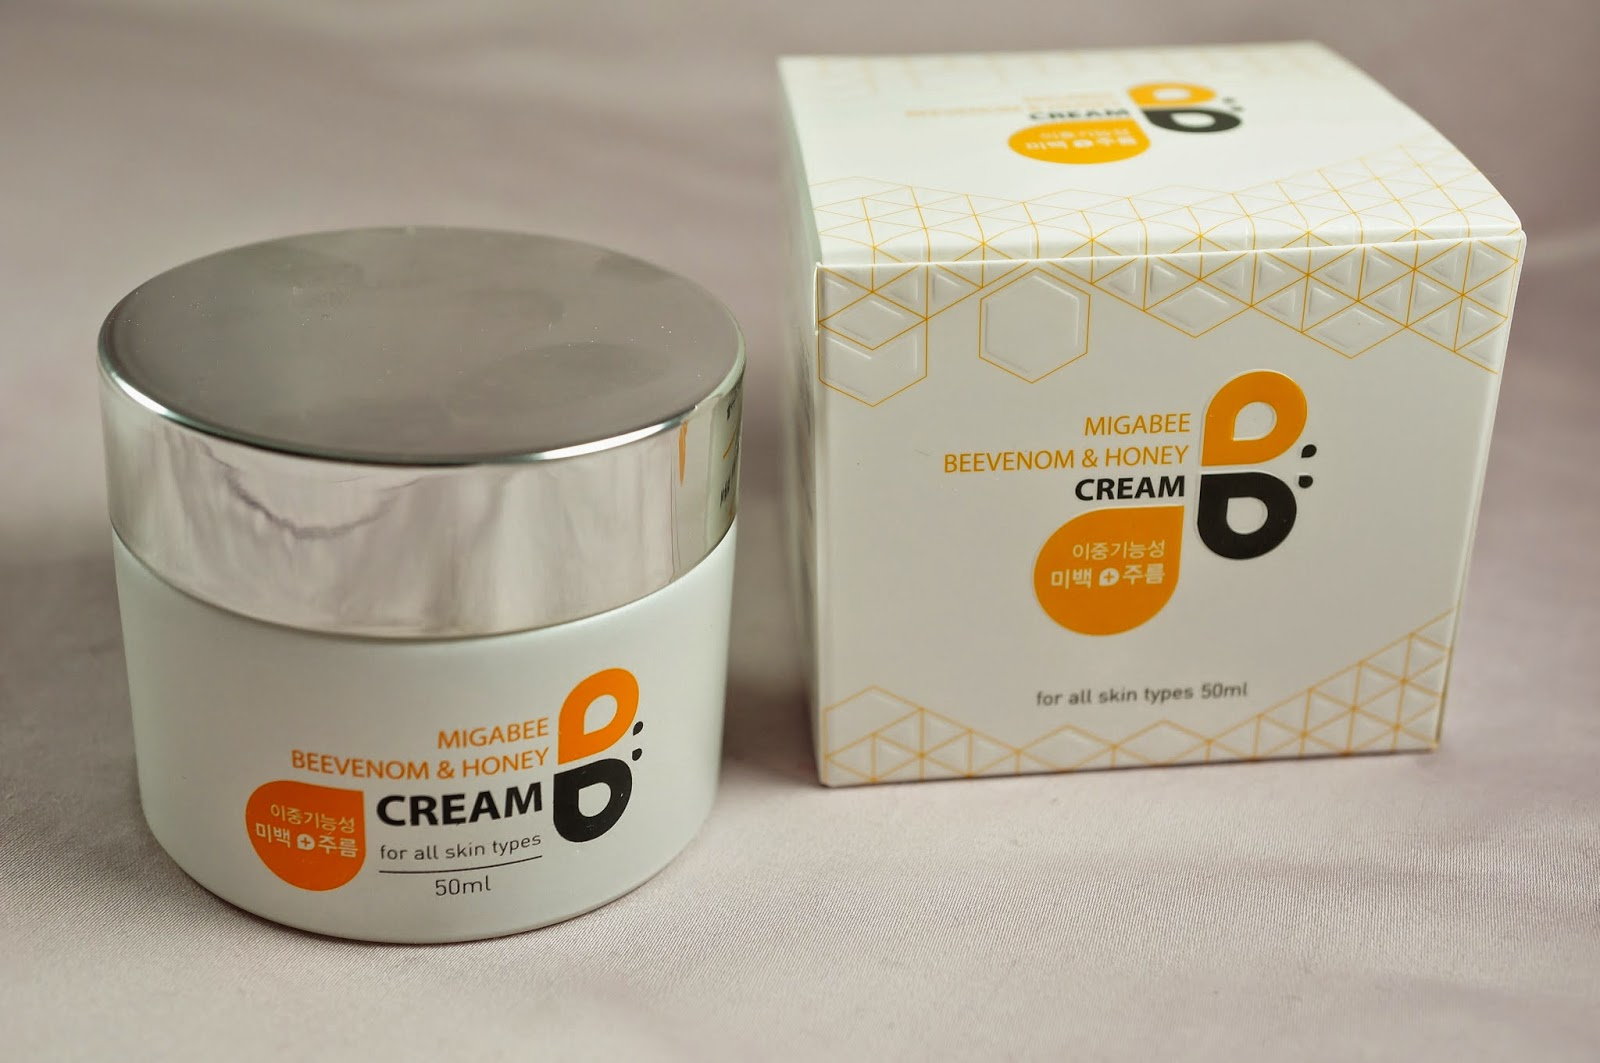 Memebox Special #42 OMG Unboxing Review Migabee Bee Venom Honey Propolis Royal Jelly Cream